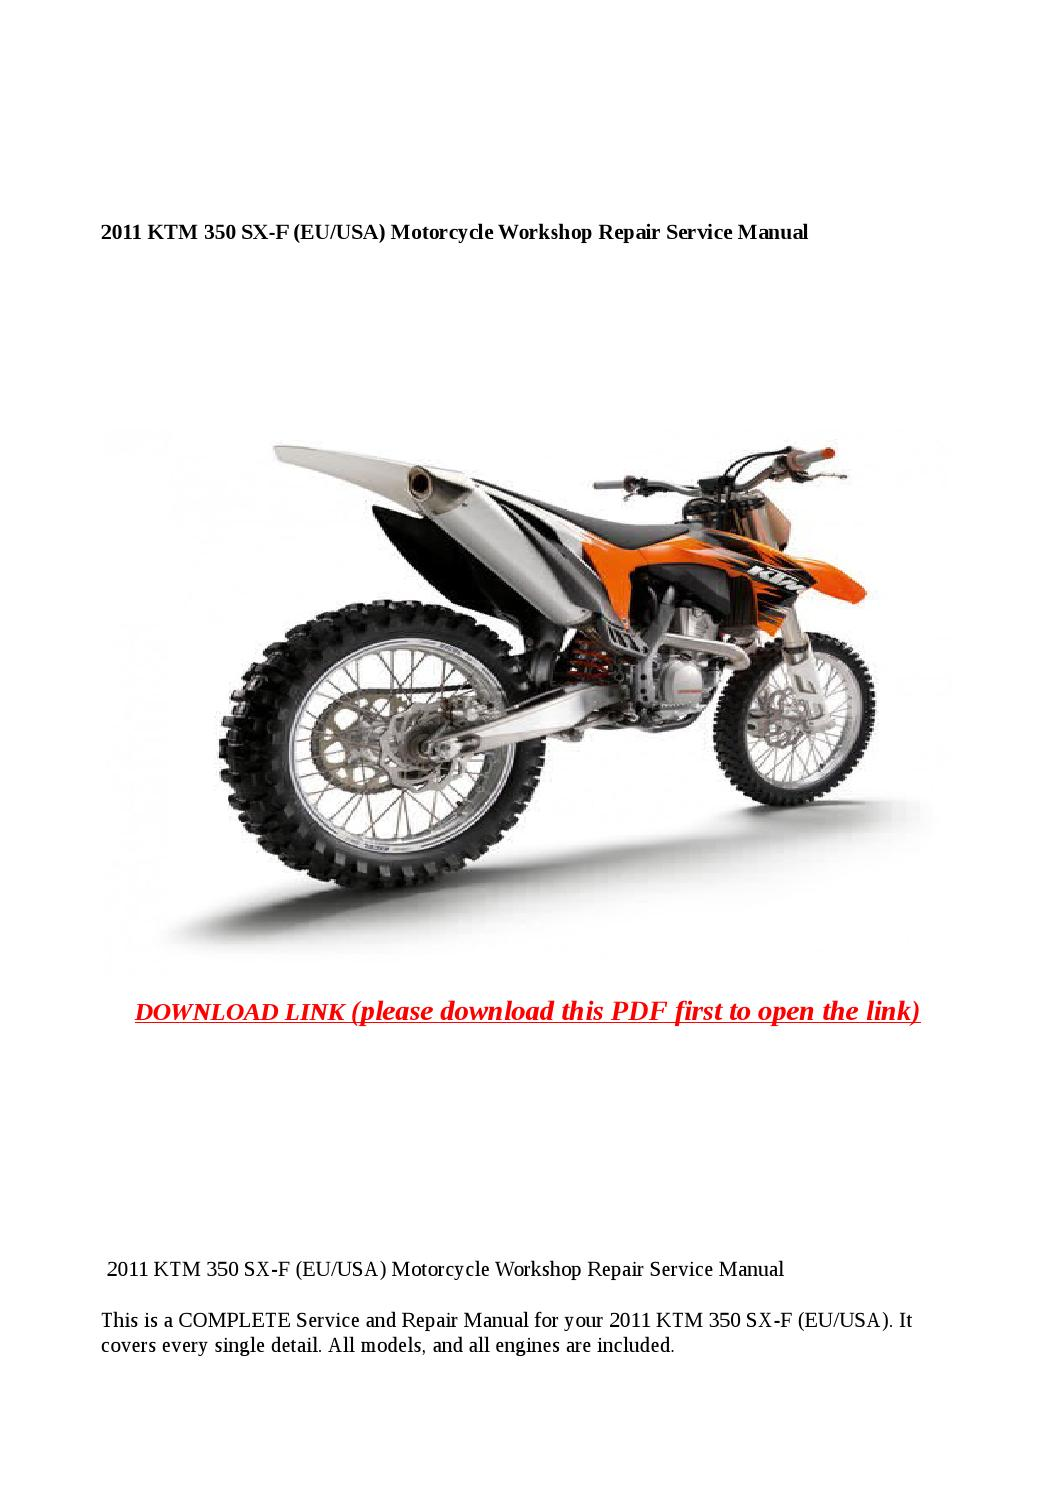 2011 ktm 350 sx f (eu usa) motorcycle workshop repair